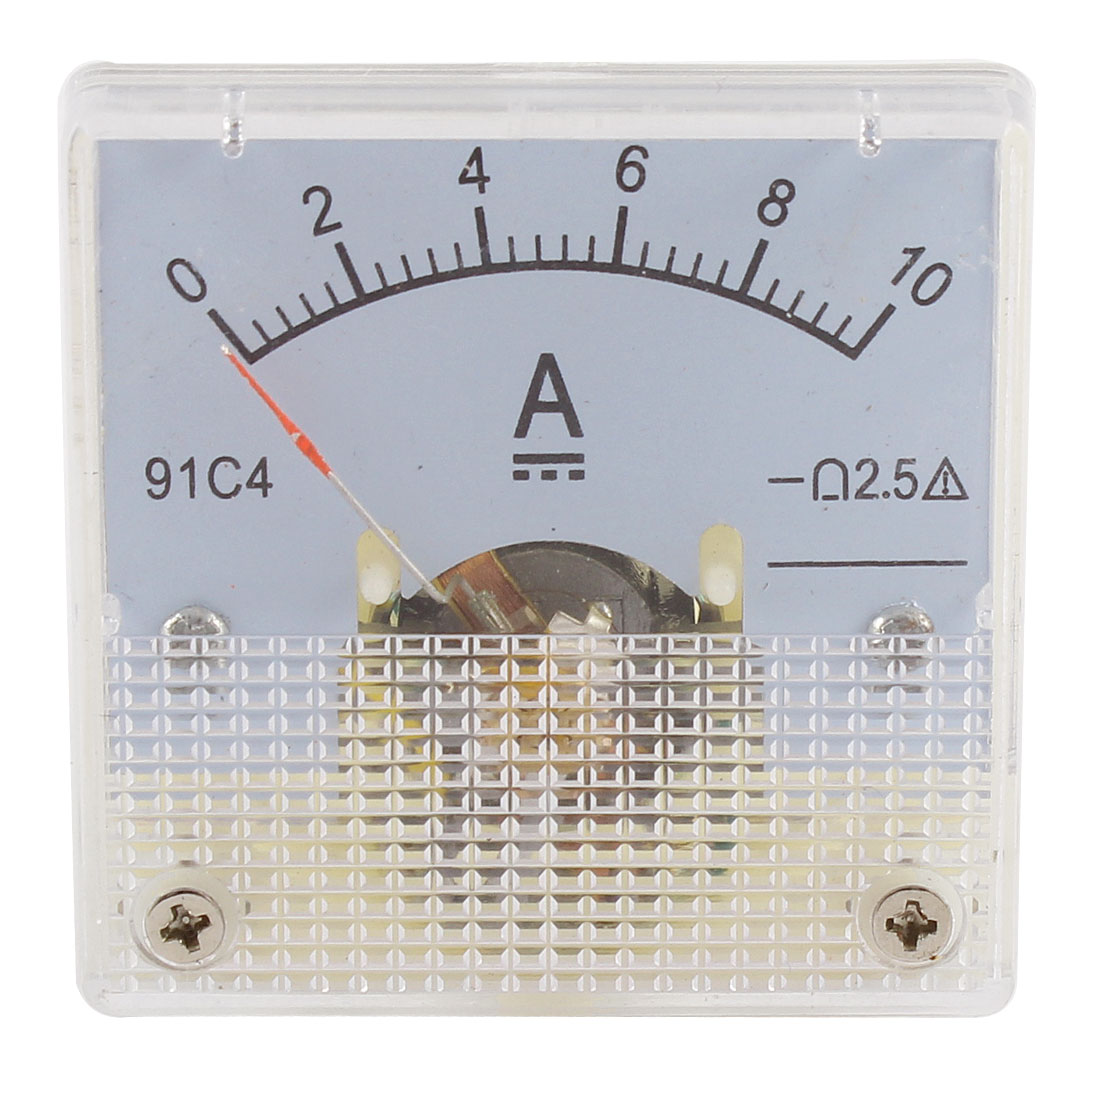 91C4 DC 0-10A Rectangle Mini Analog Panel Ammeter Gauge Amperemeter Class 2.5